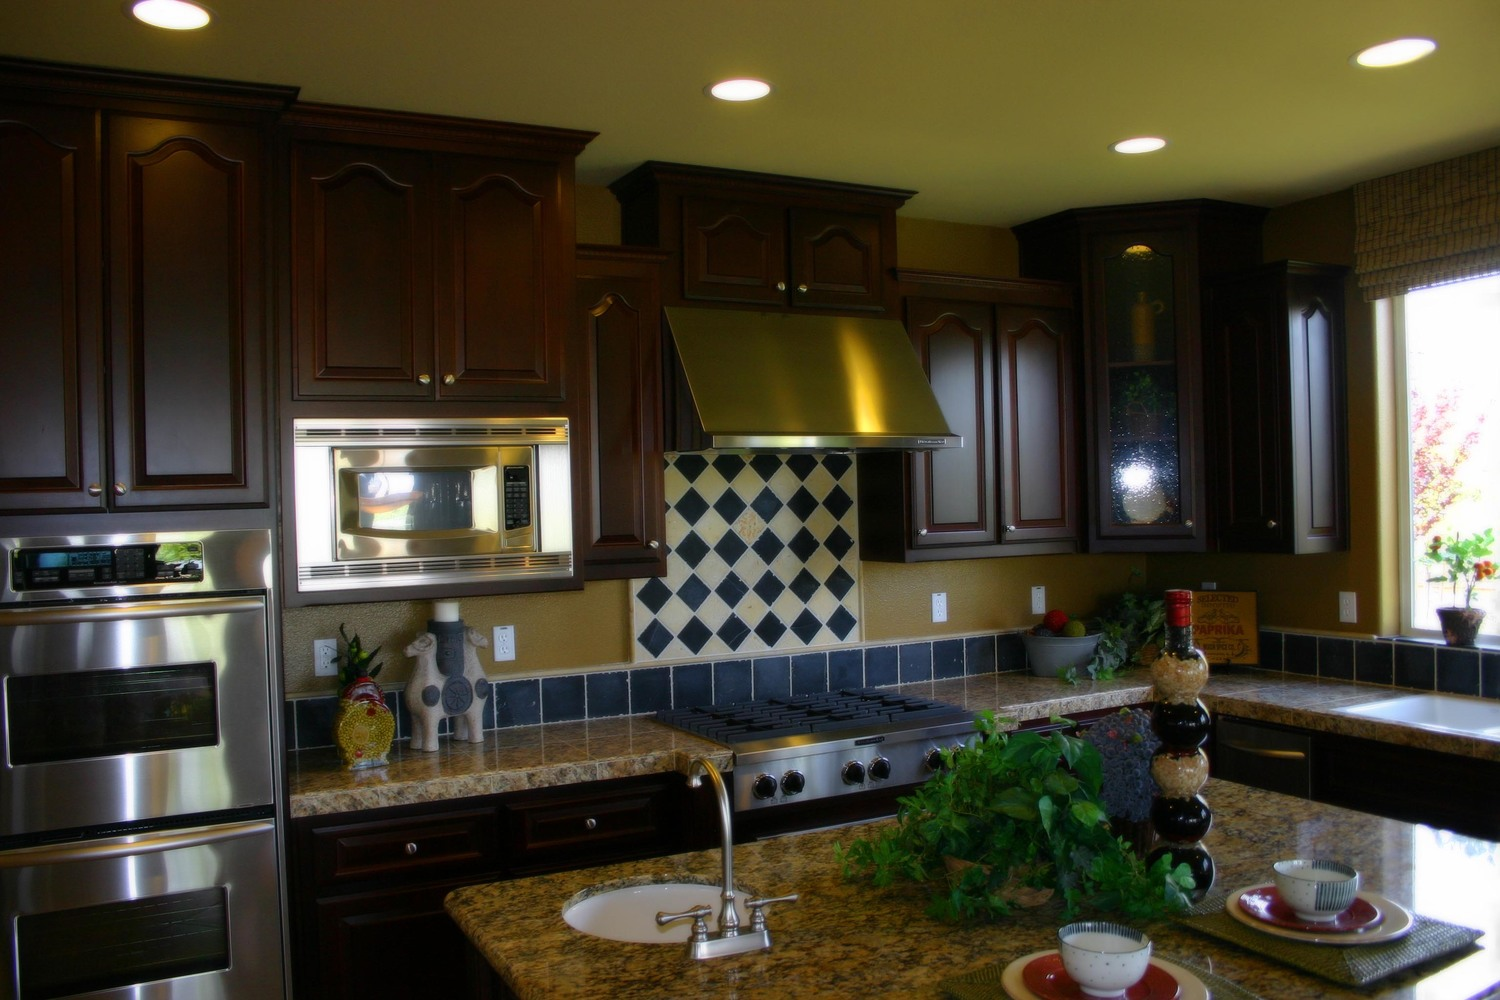 Contact Capital Cabinets & Floors Inc. | Kitchen Bathroom